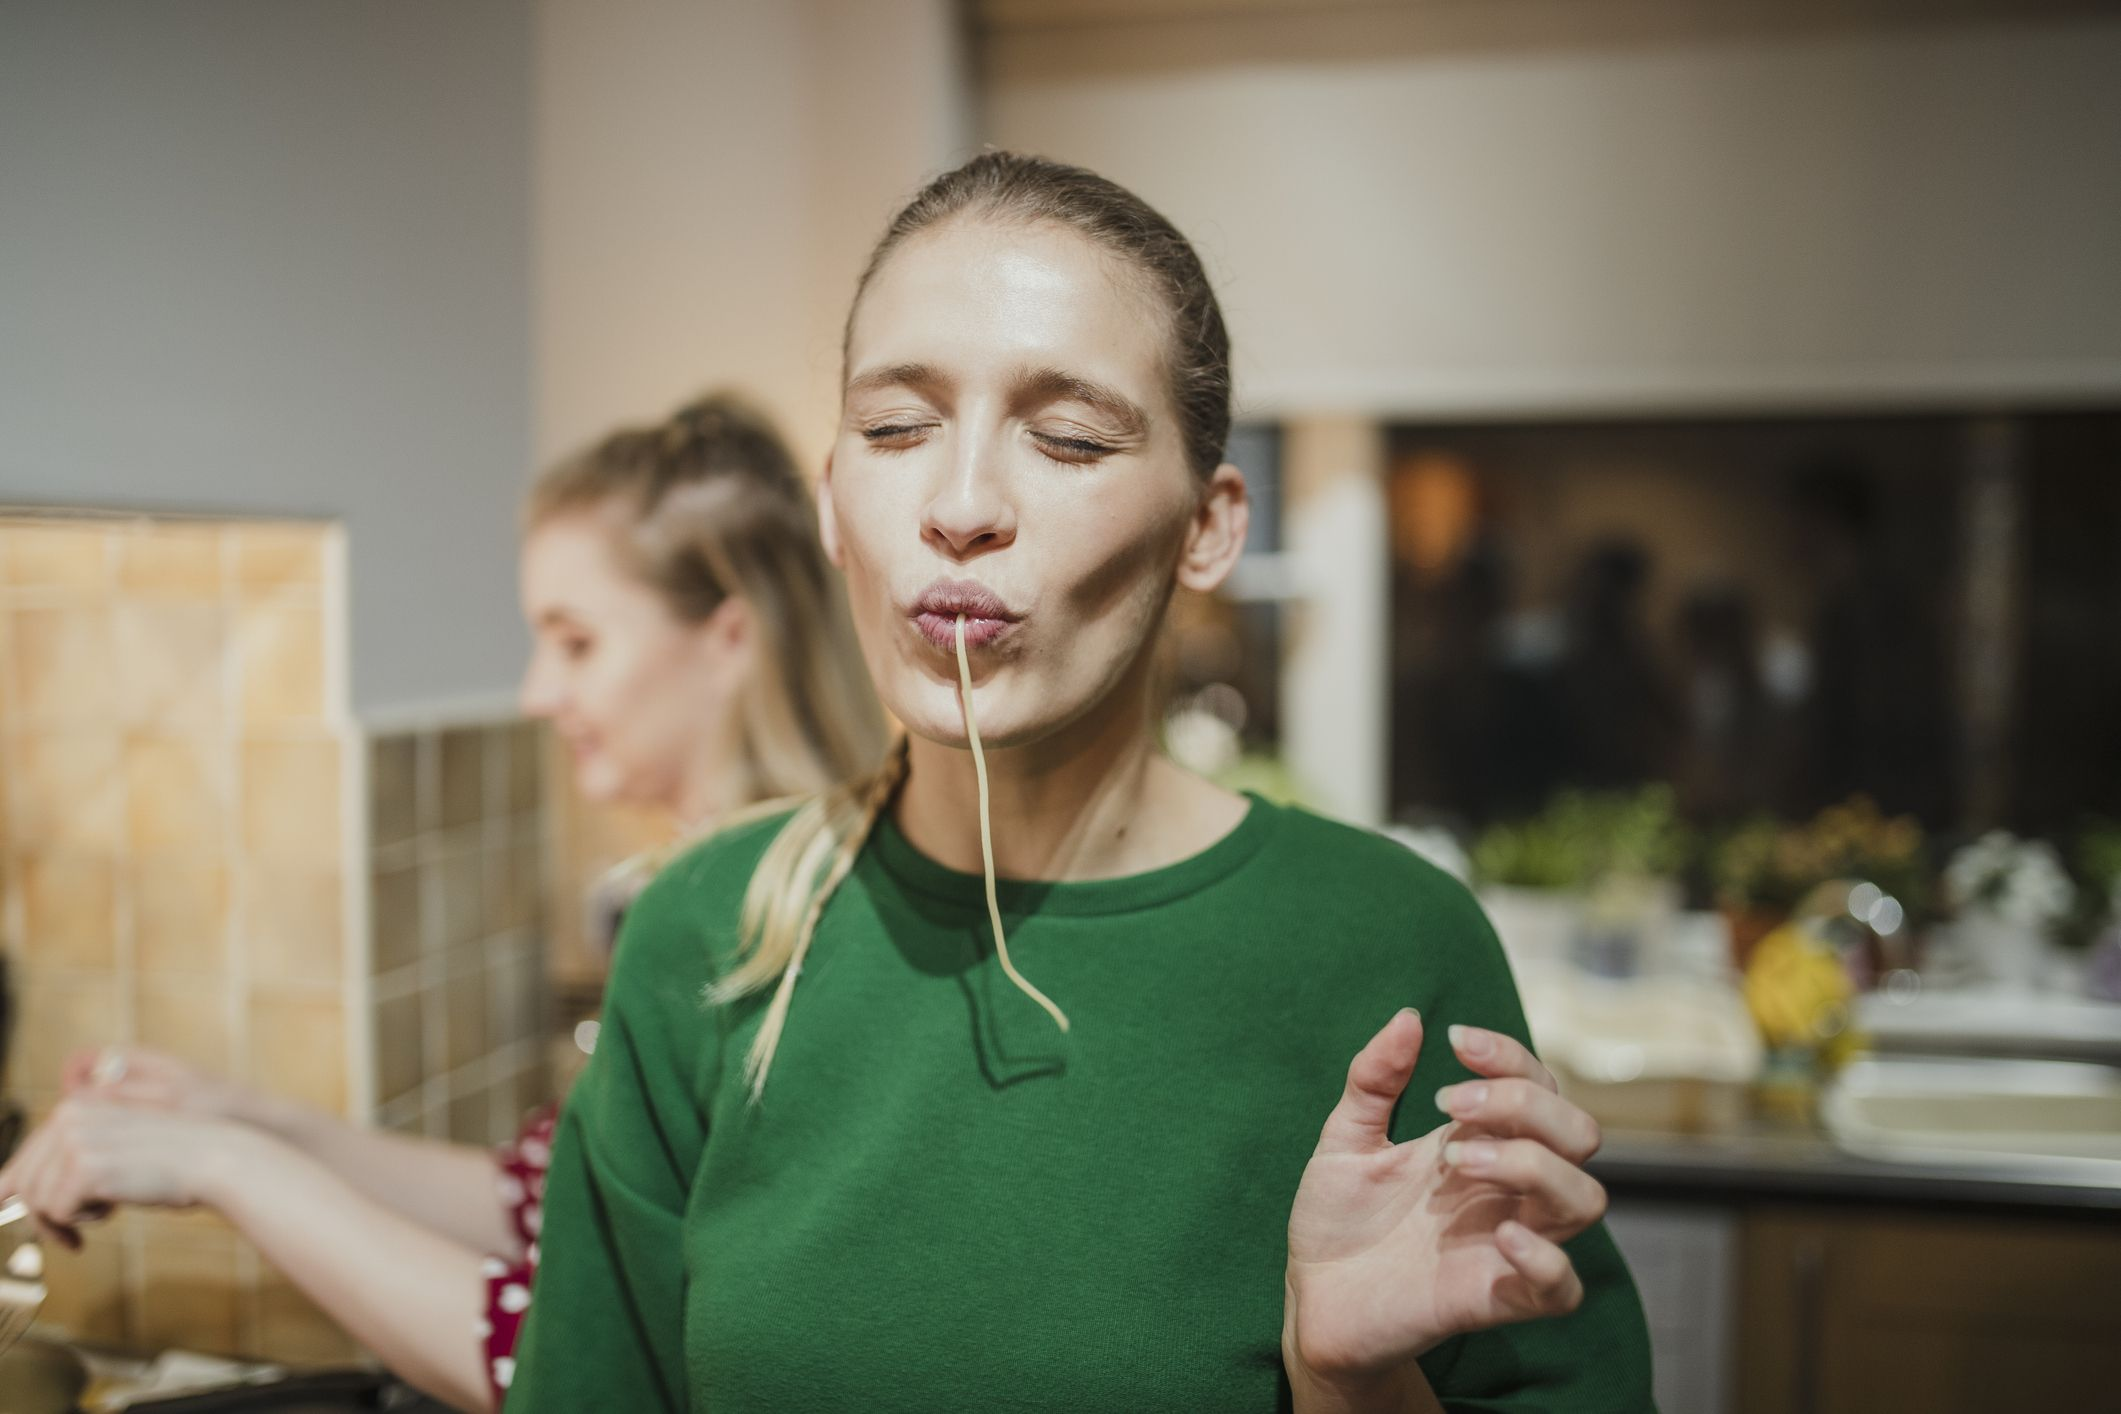 9 Things That Stop the Anxiety - Eat Something